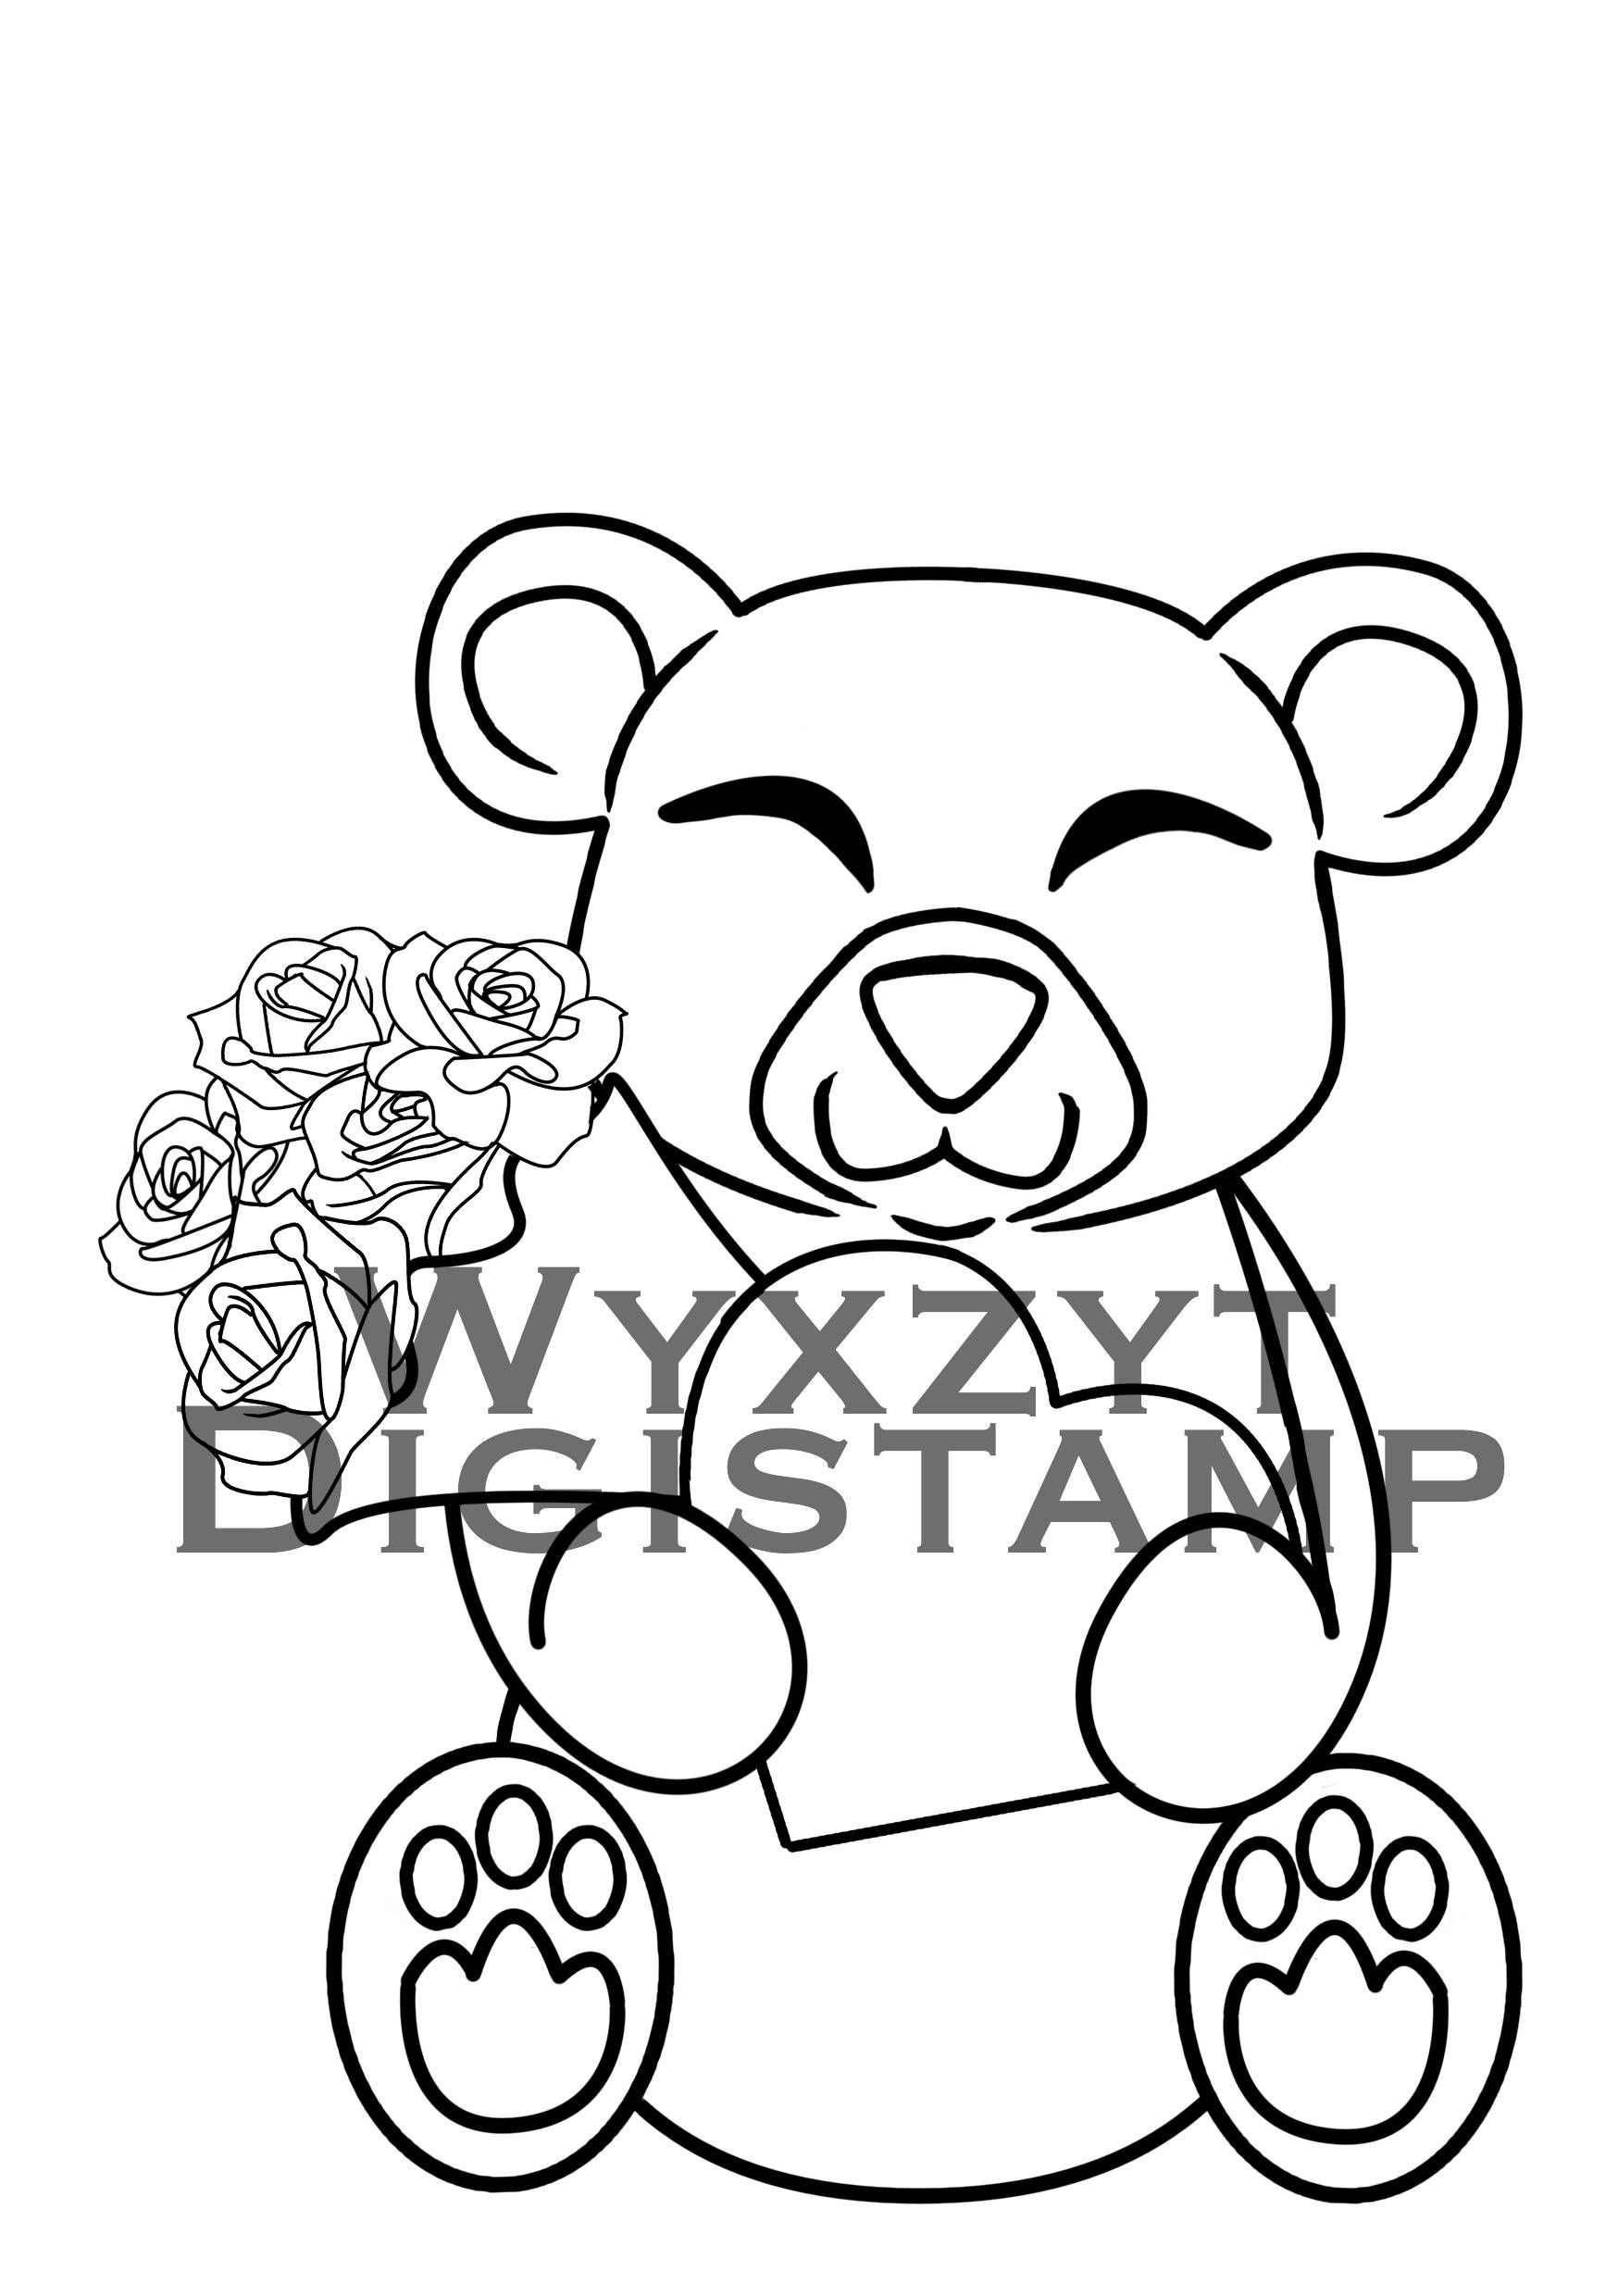 Cute Teddy Bear Digistamp Roses And Heart Instant Download My